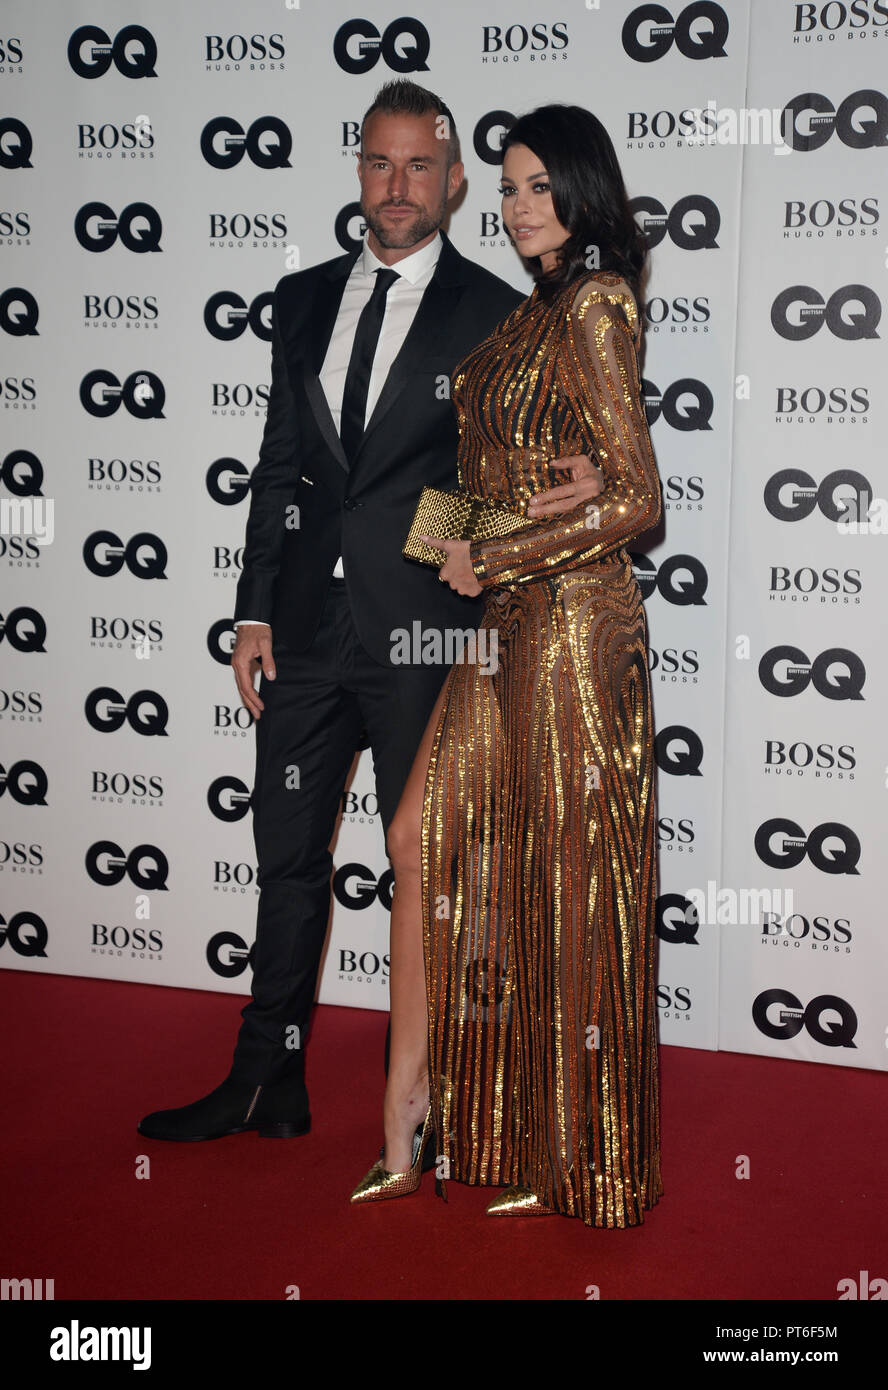 GQ Men Of The Year Awards  Featuring: Phillip Pien Where: London, United Kingdom When: 05 Sep 2018 Credit: Tony Oudot/WENN - Stock Image